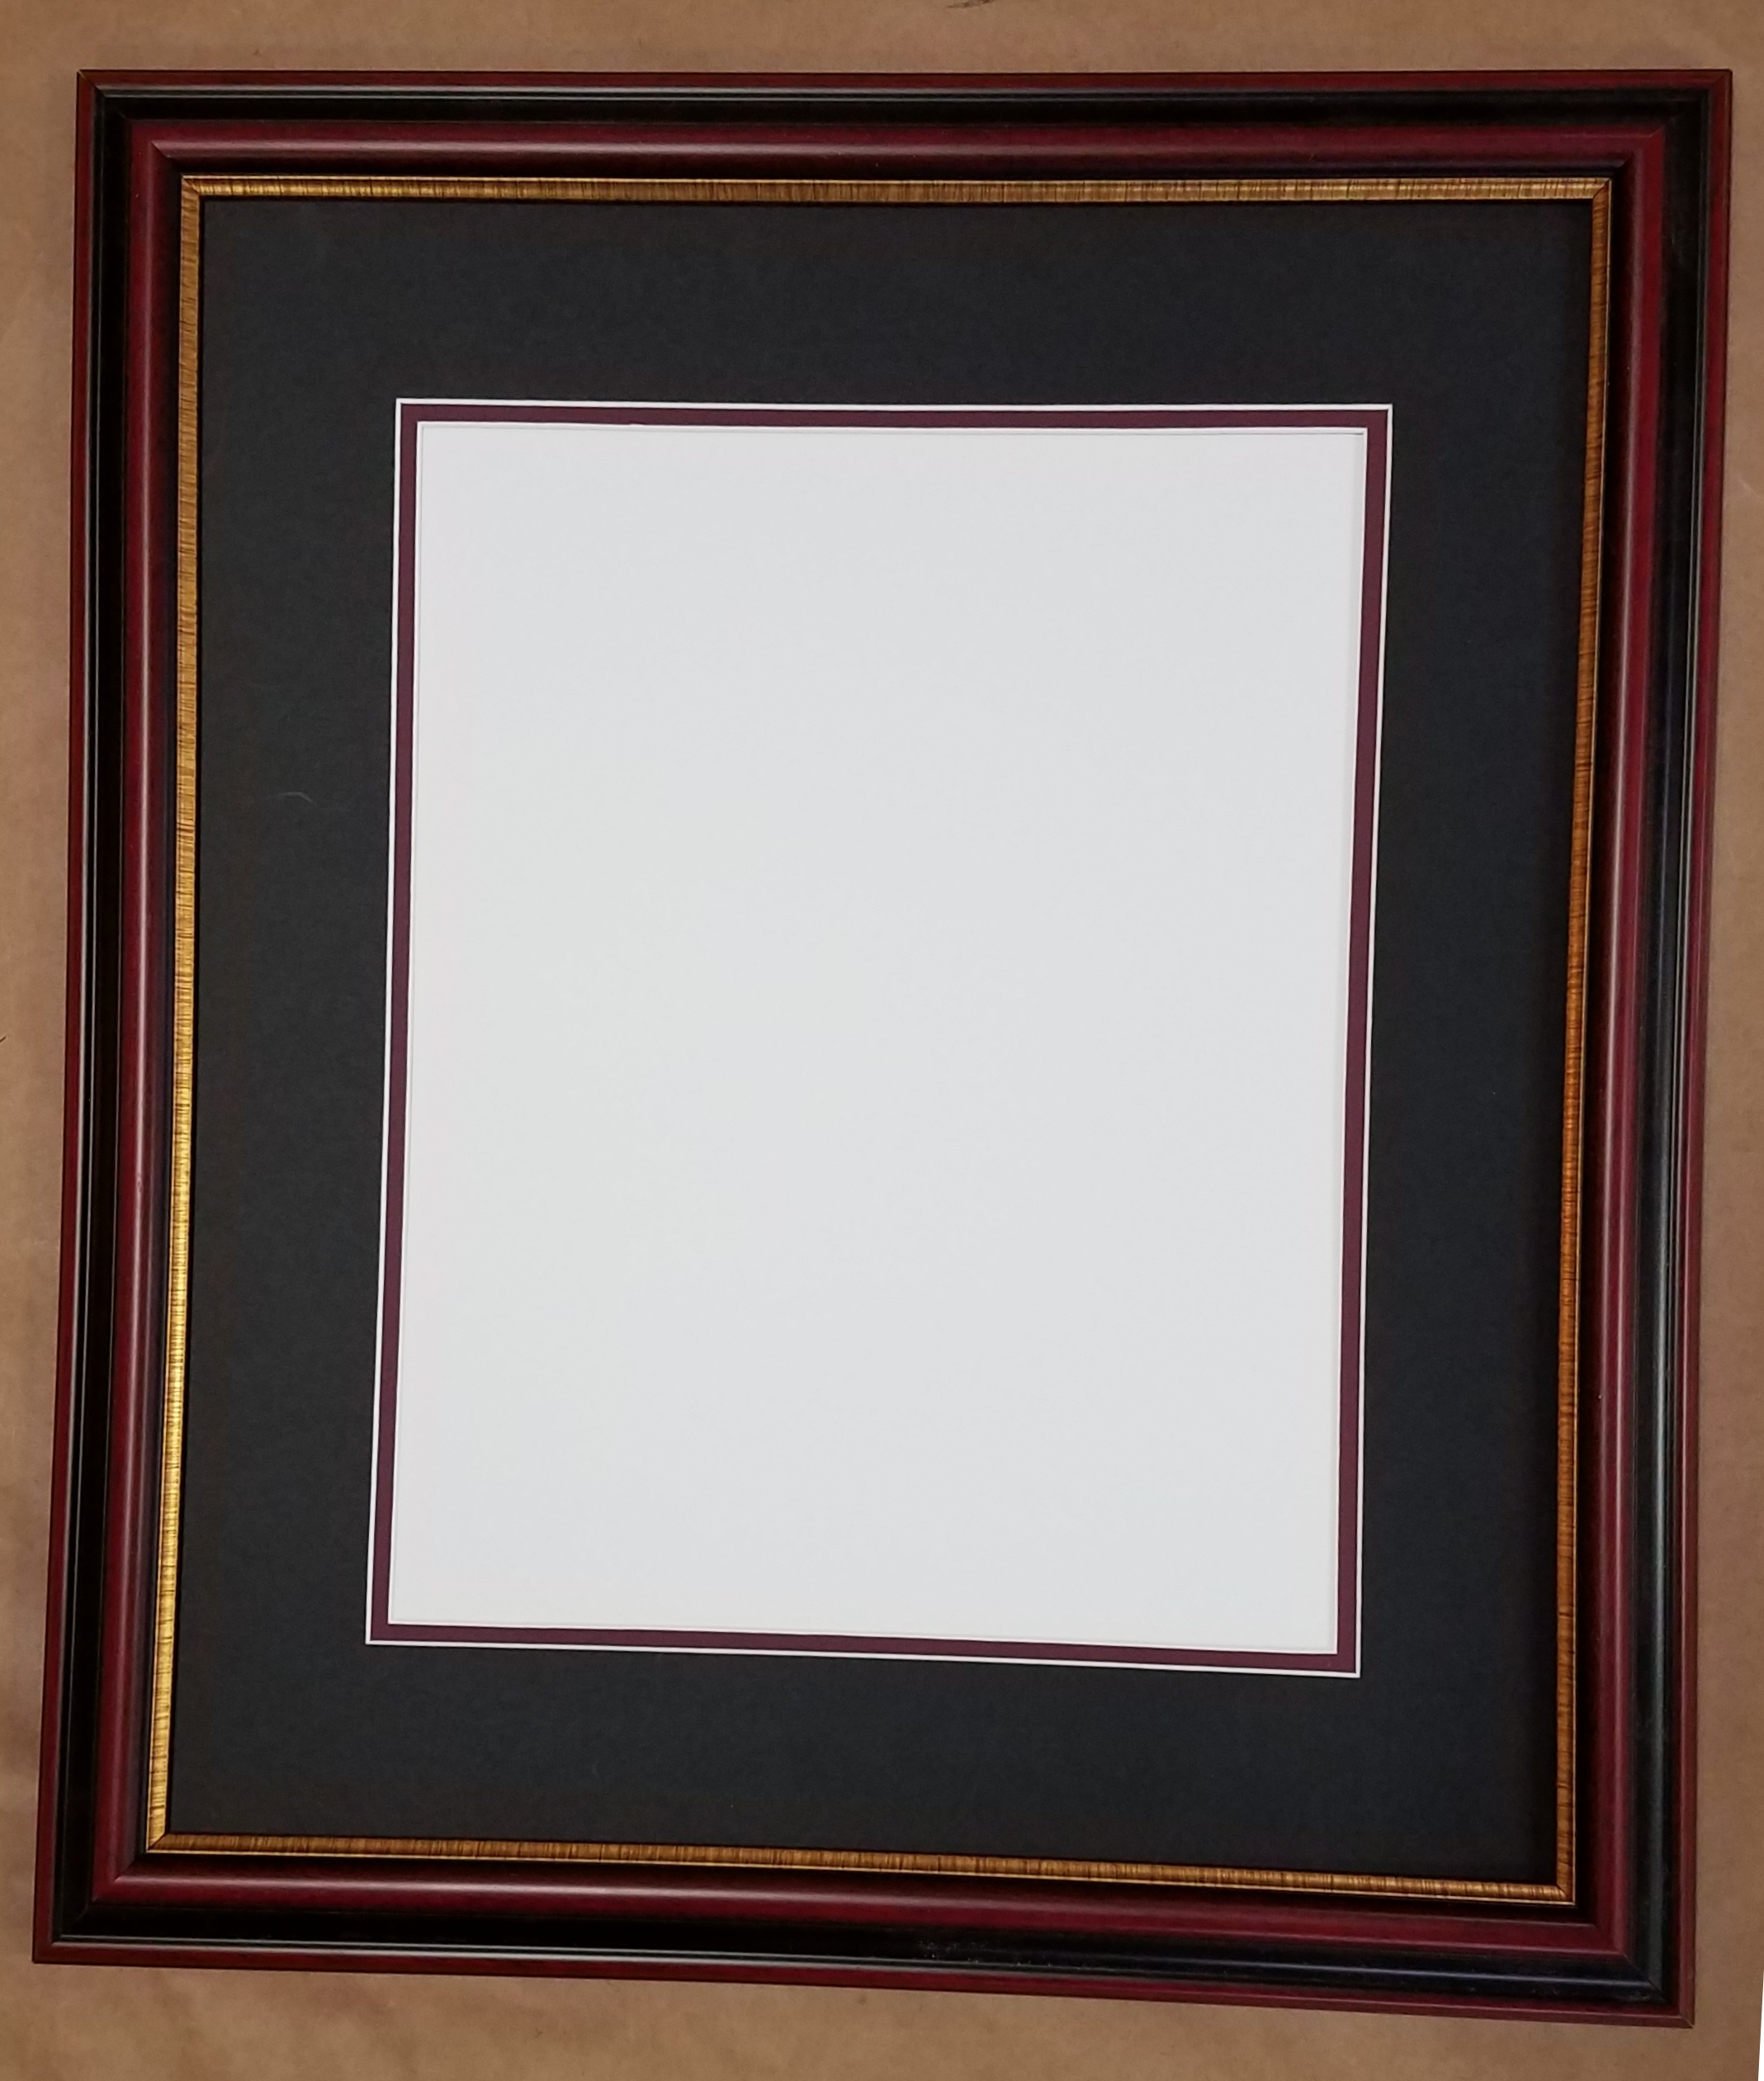 Columbia frame shop quality custom picture framing filed under diploma frame tagged with diploma framing five points frame shop gamecocks university of south carolina usc diploma frame jeuxipadfo Image collections